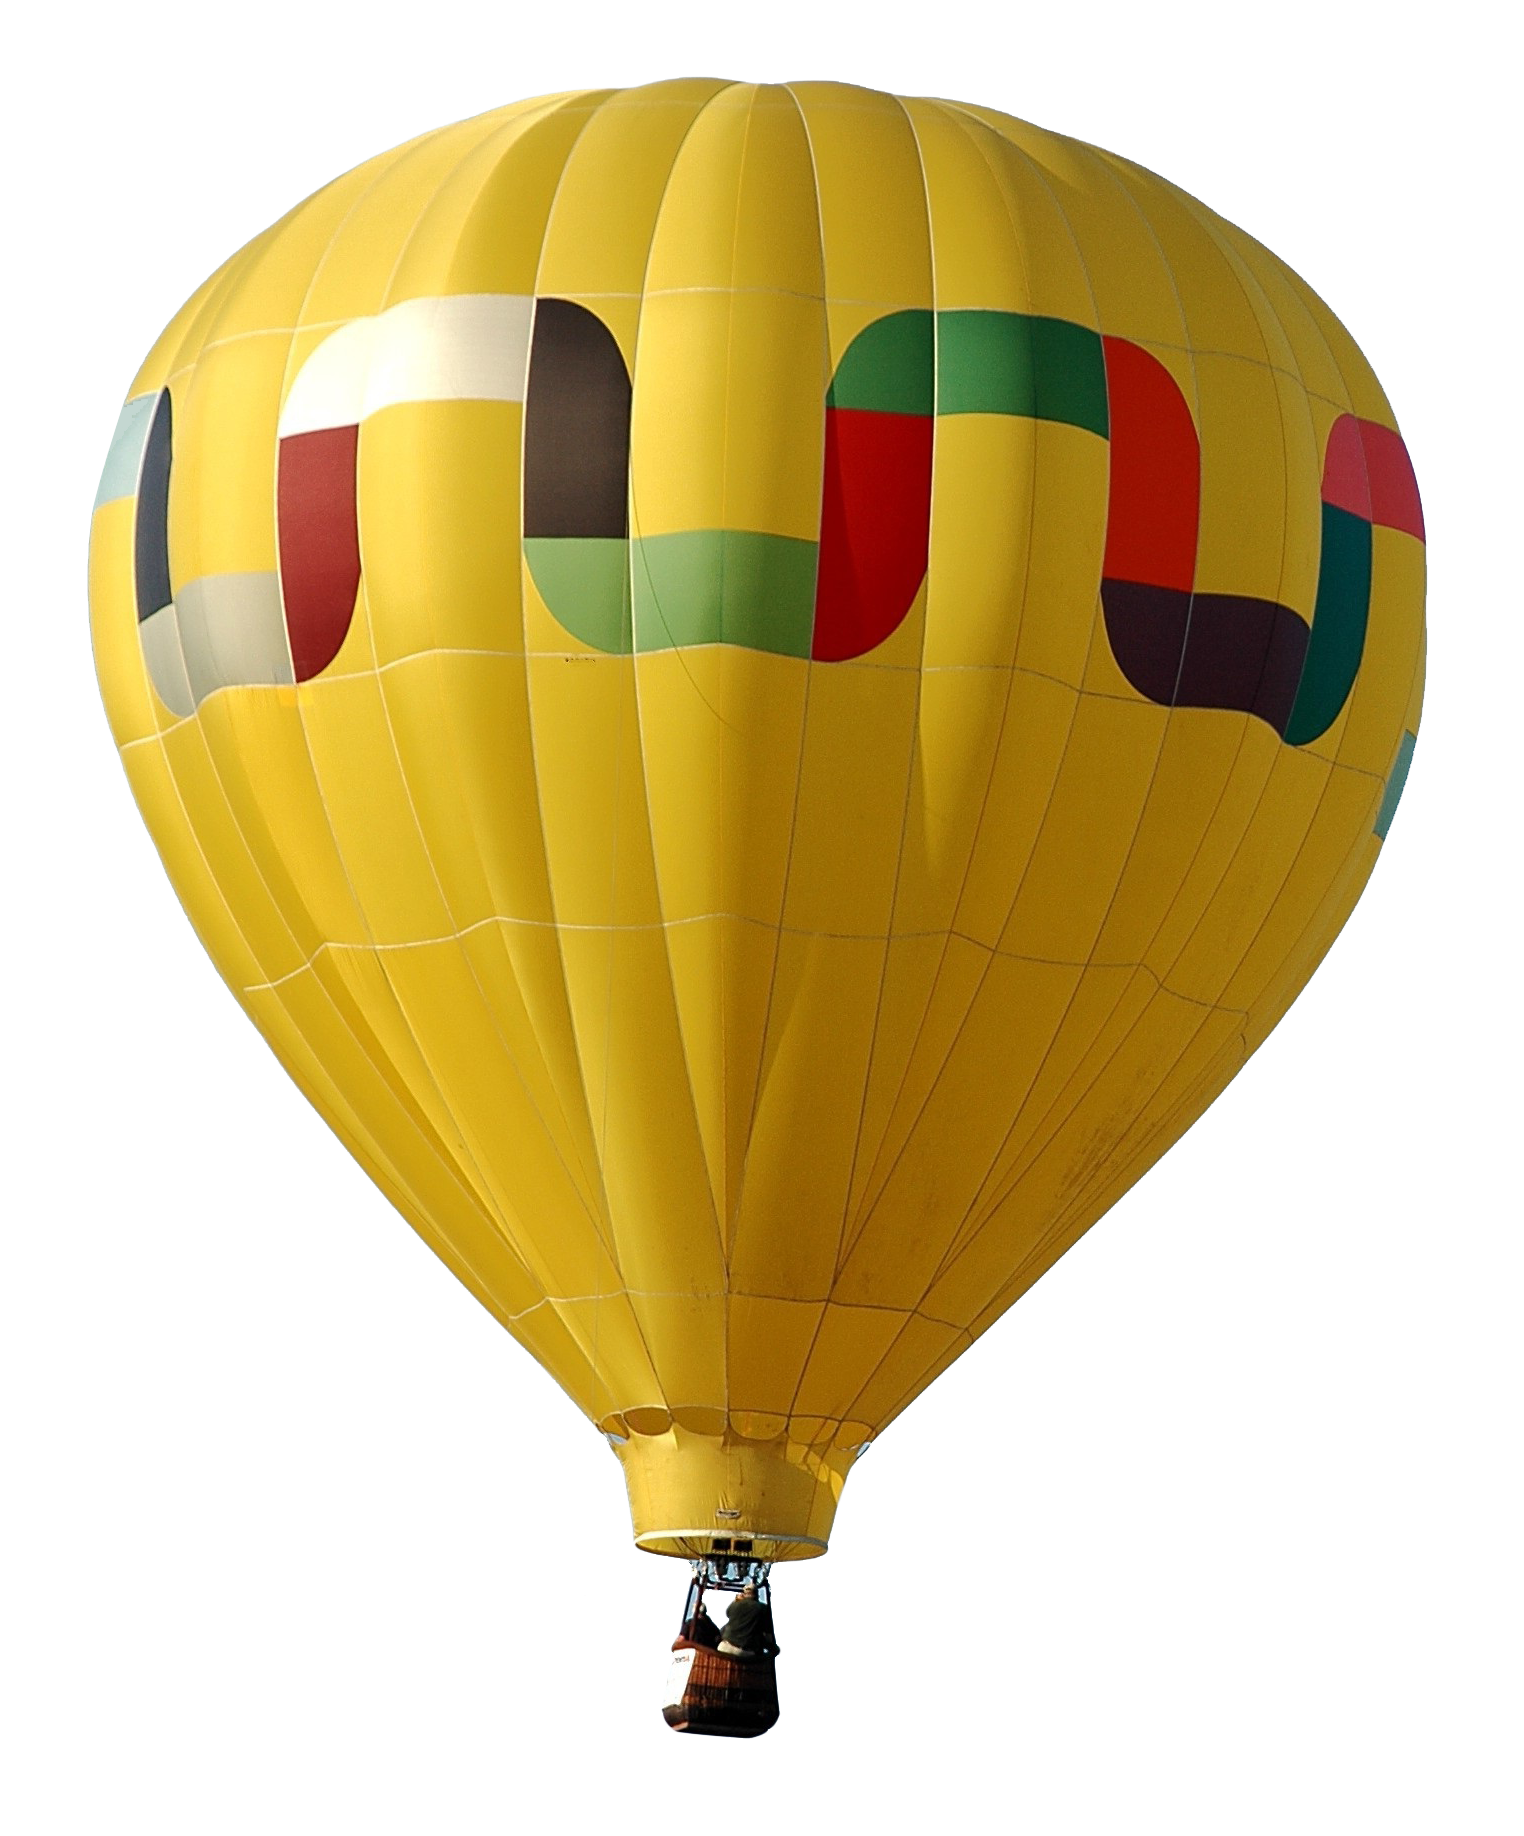 Clipart plane balloon. Jet aircraft png image